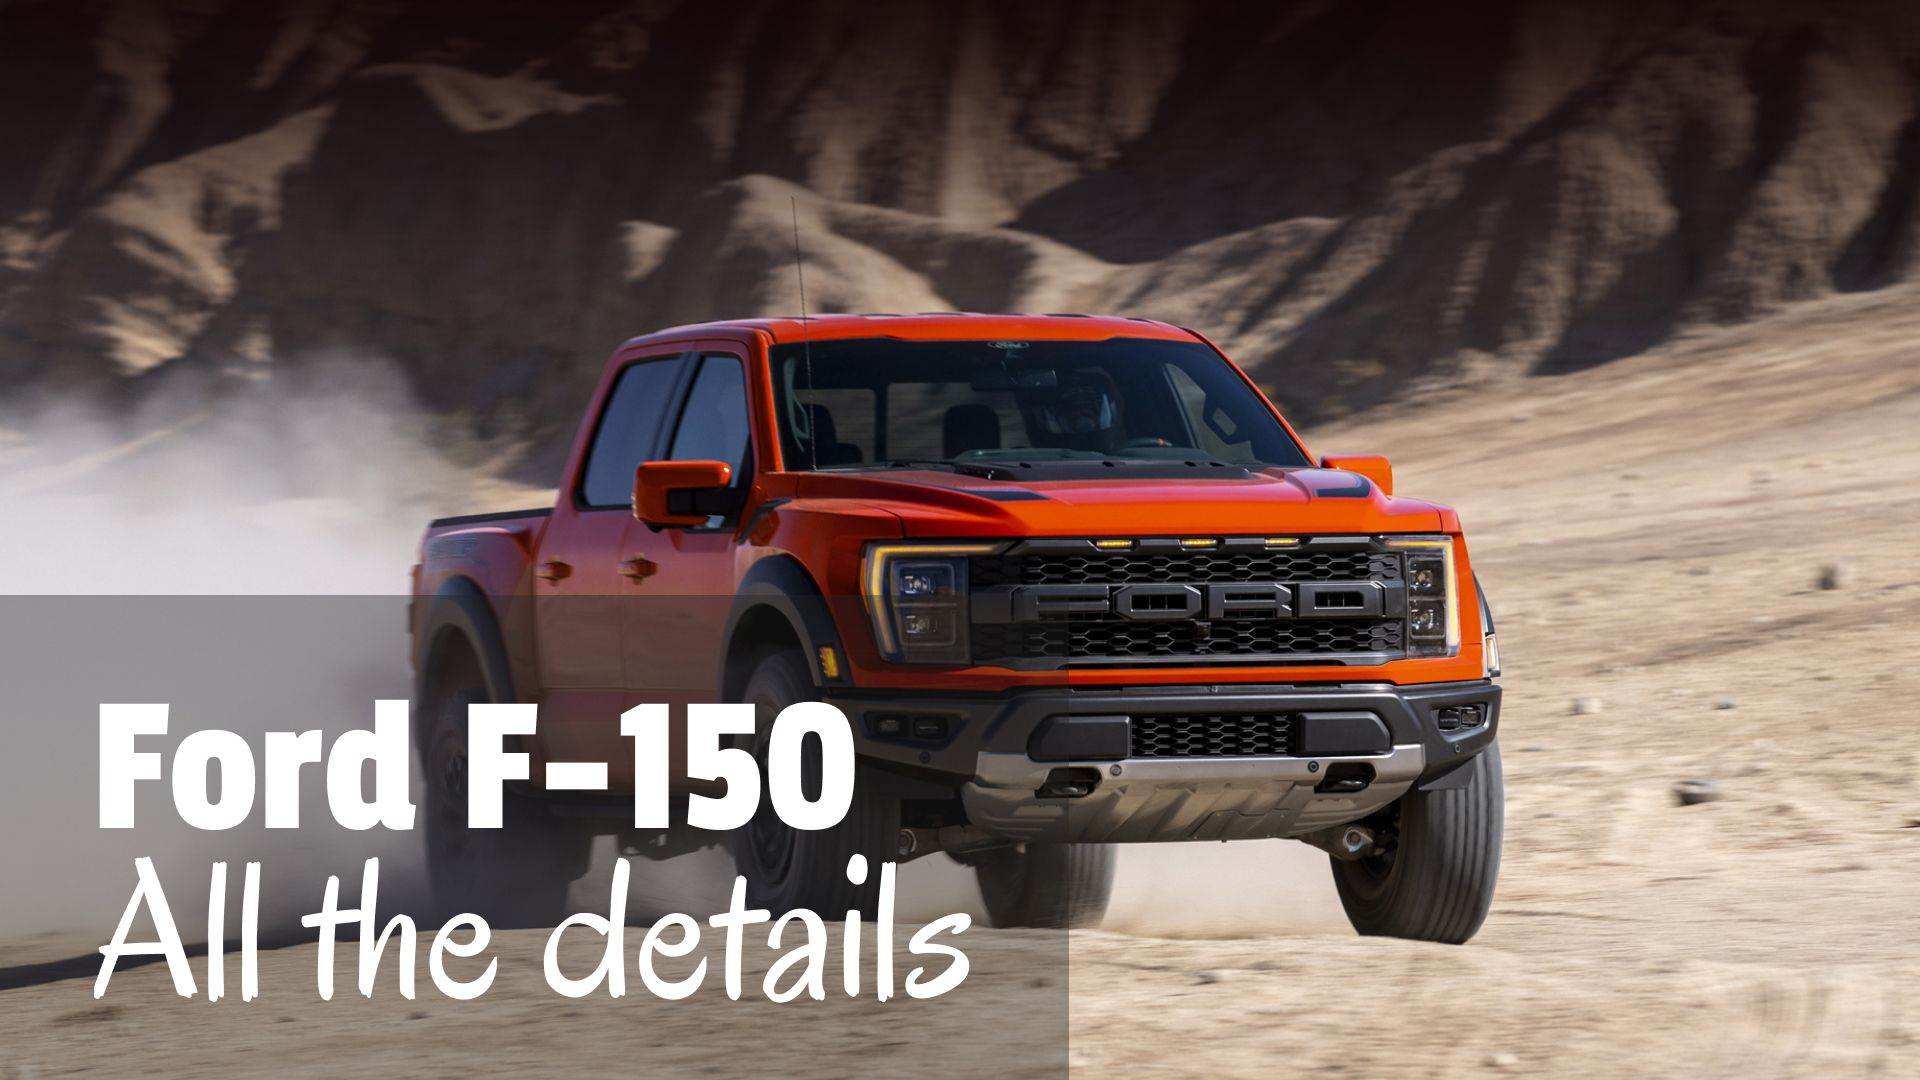 ford f-150 review: image